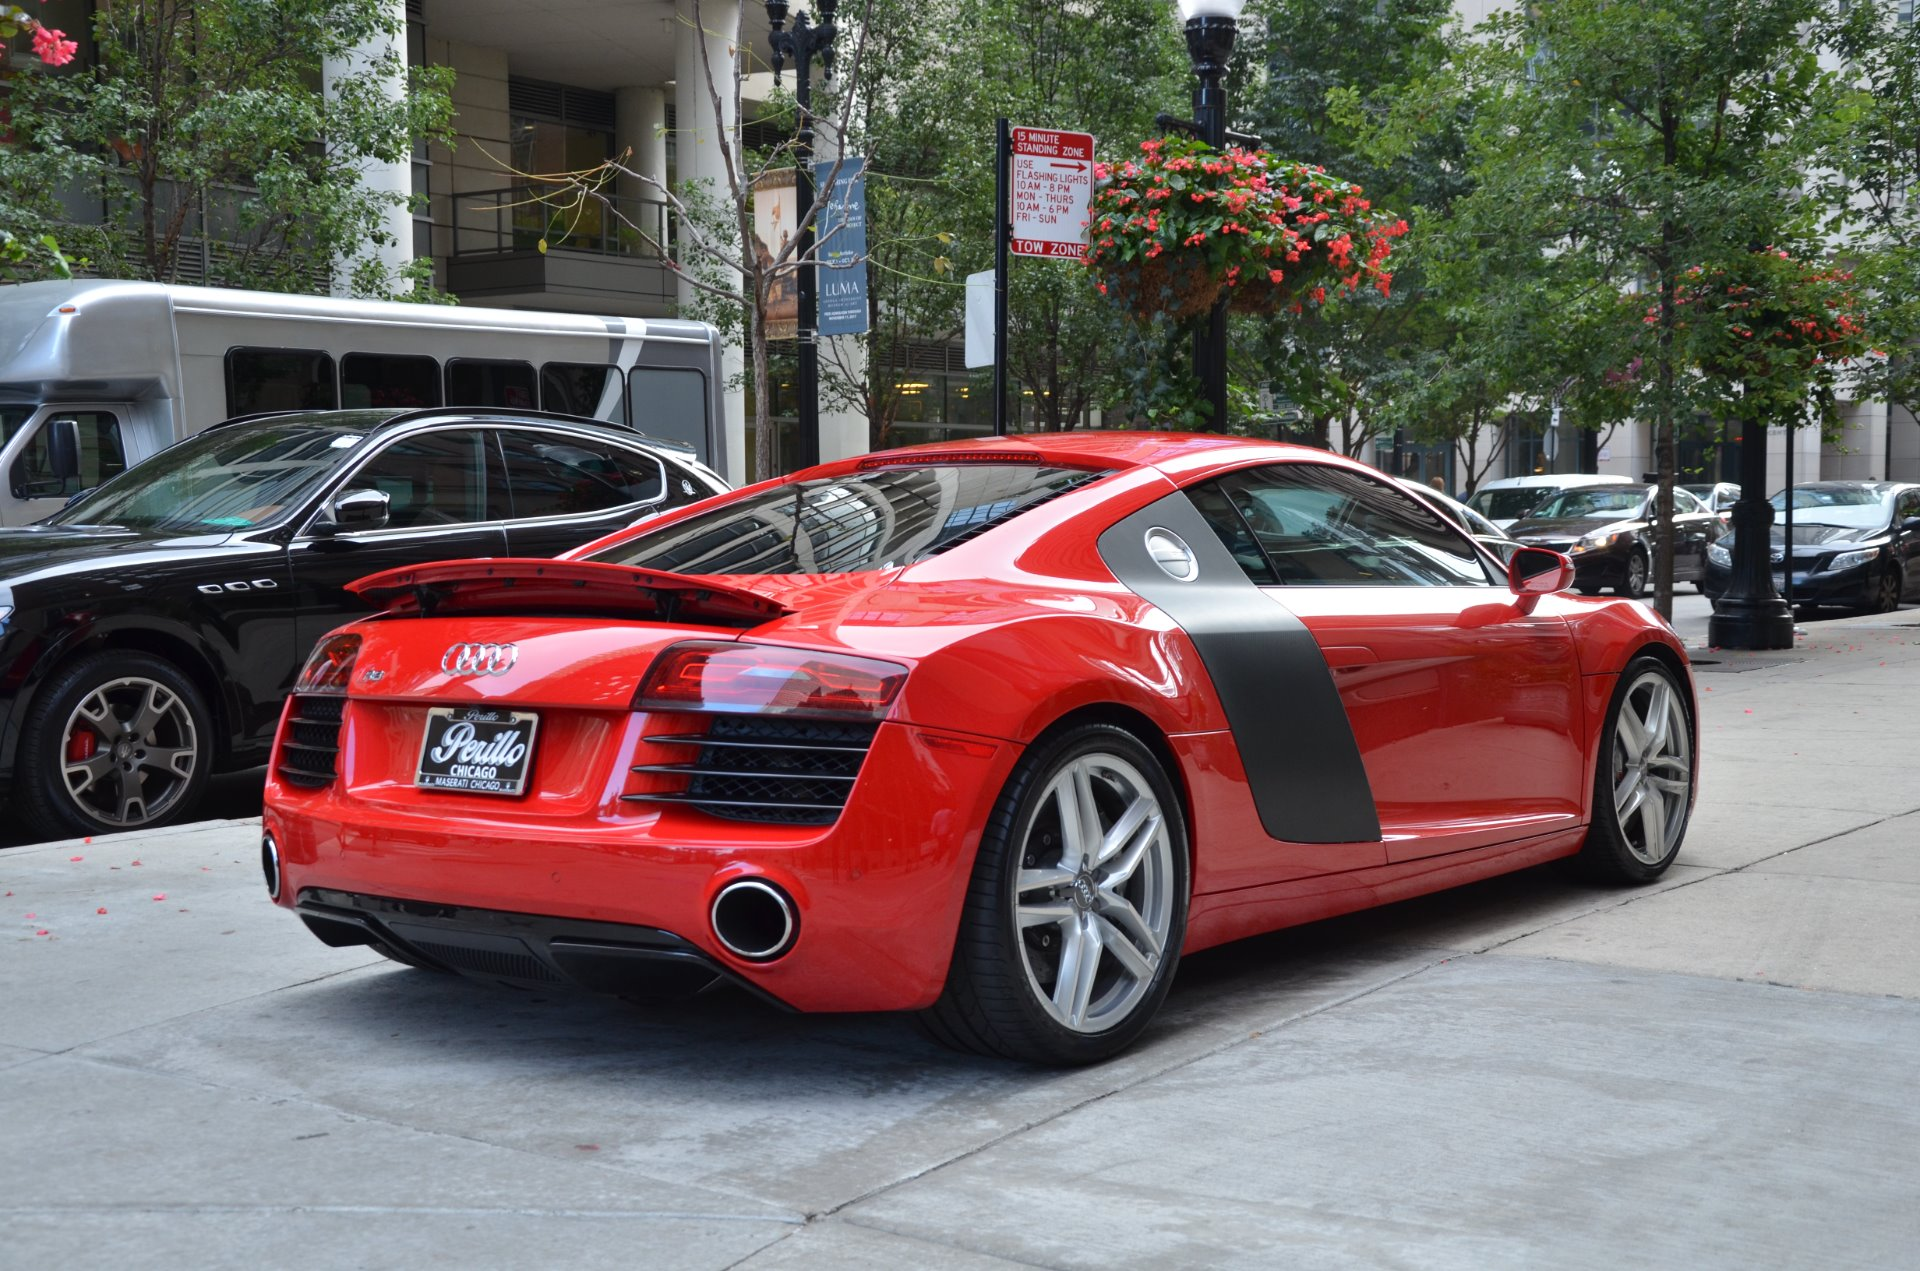 Audi R Quattro Stock LA For Sale Near Chicago IL - Audi r8 used